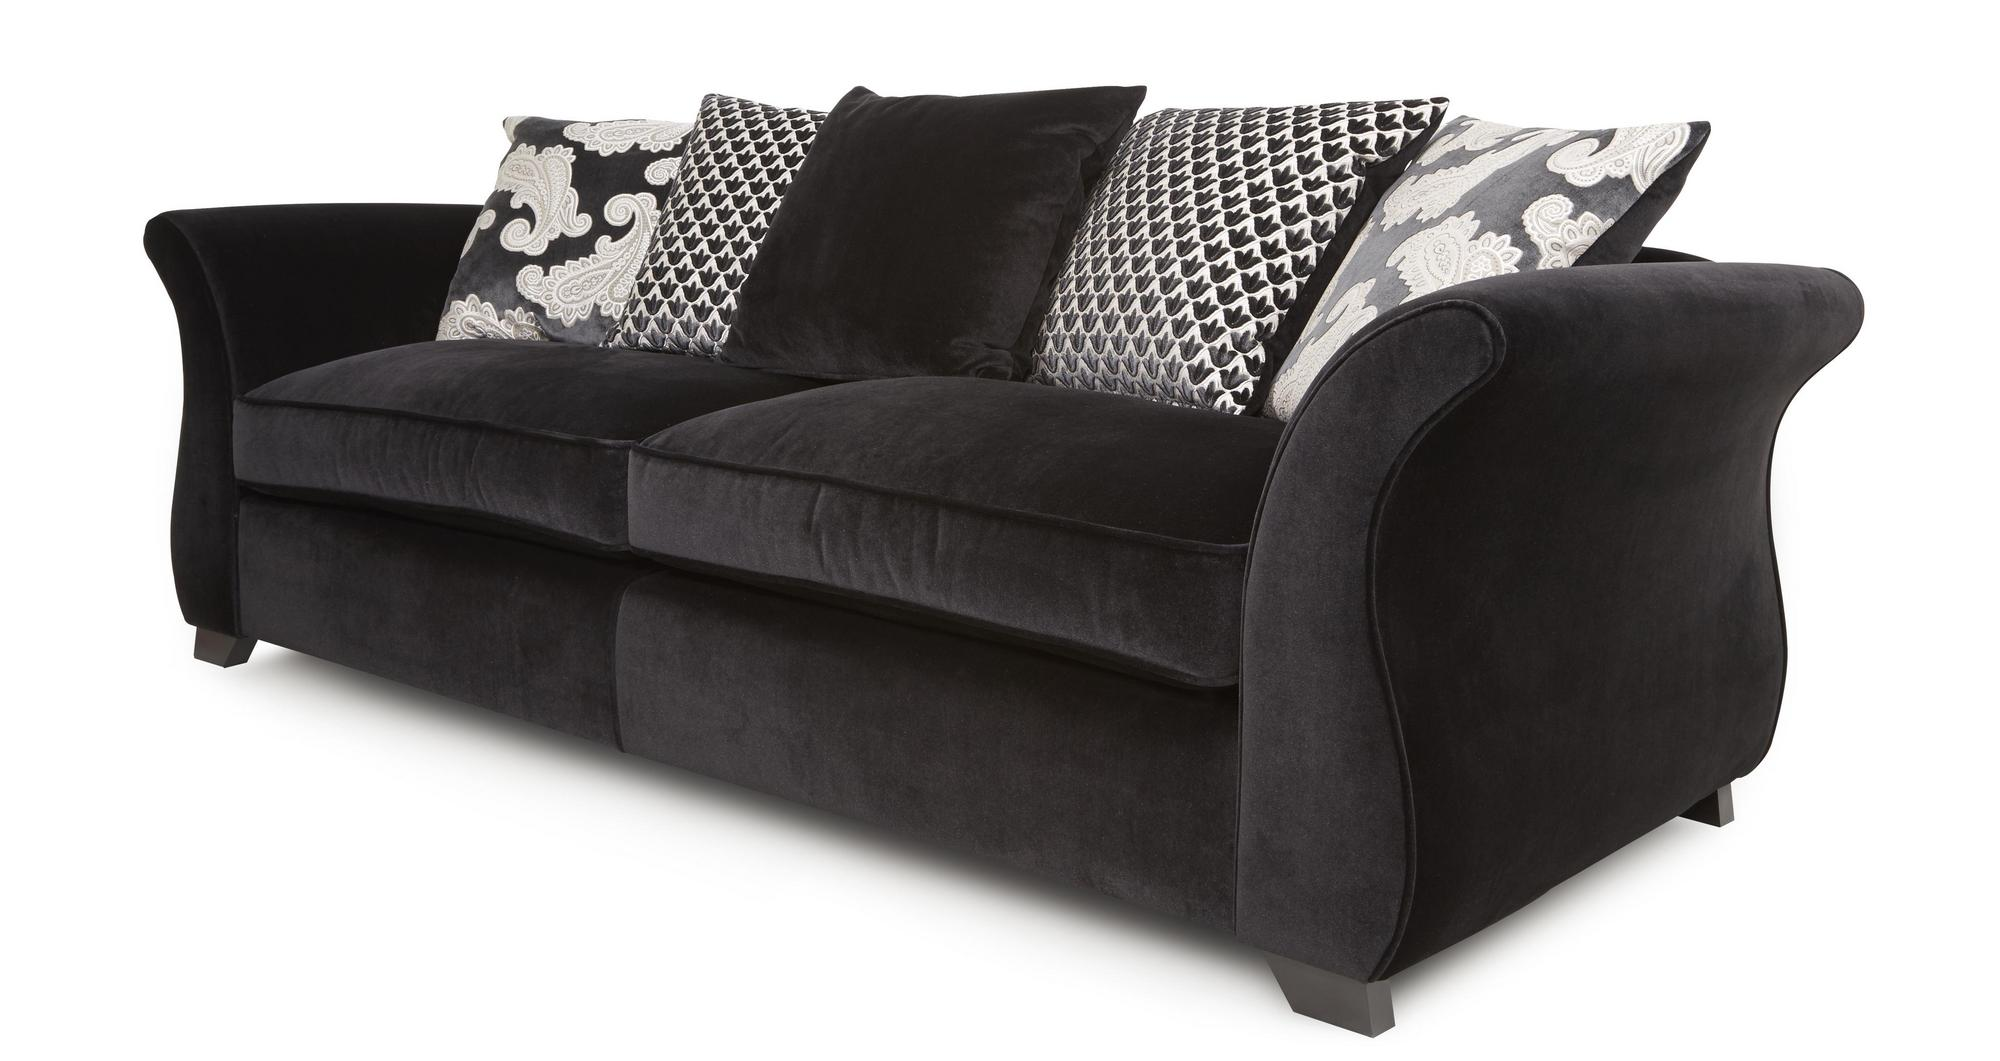 Dfs zaria fabric 4 seater sofa cuddler sofa accent chair footstool 64816 ebay Dfs 4 seater leather sofa